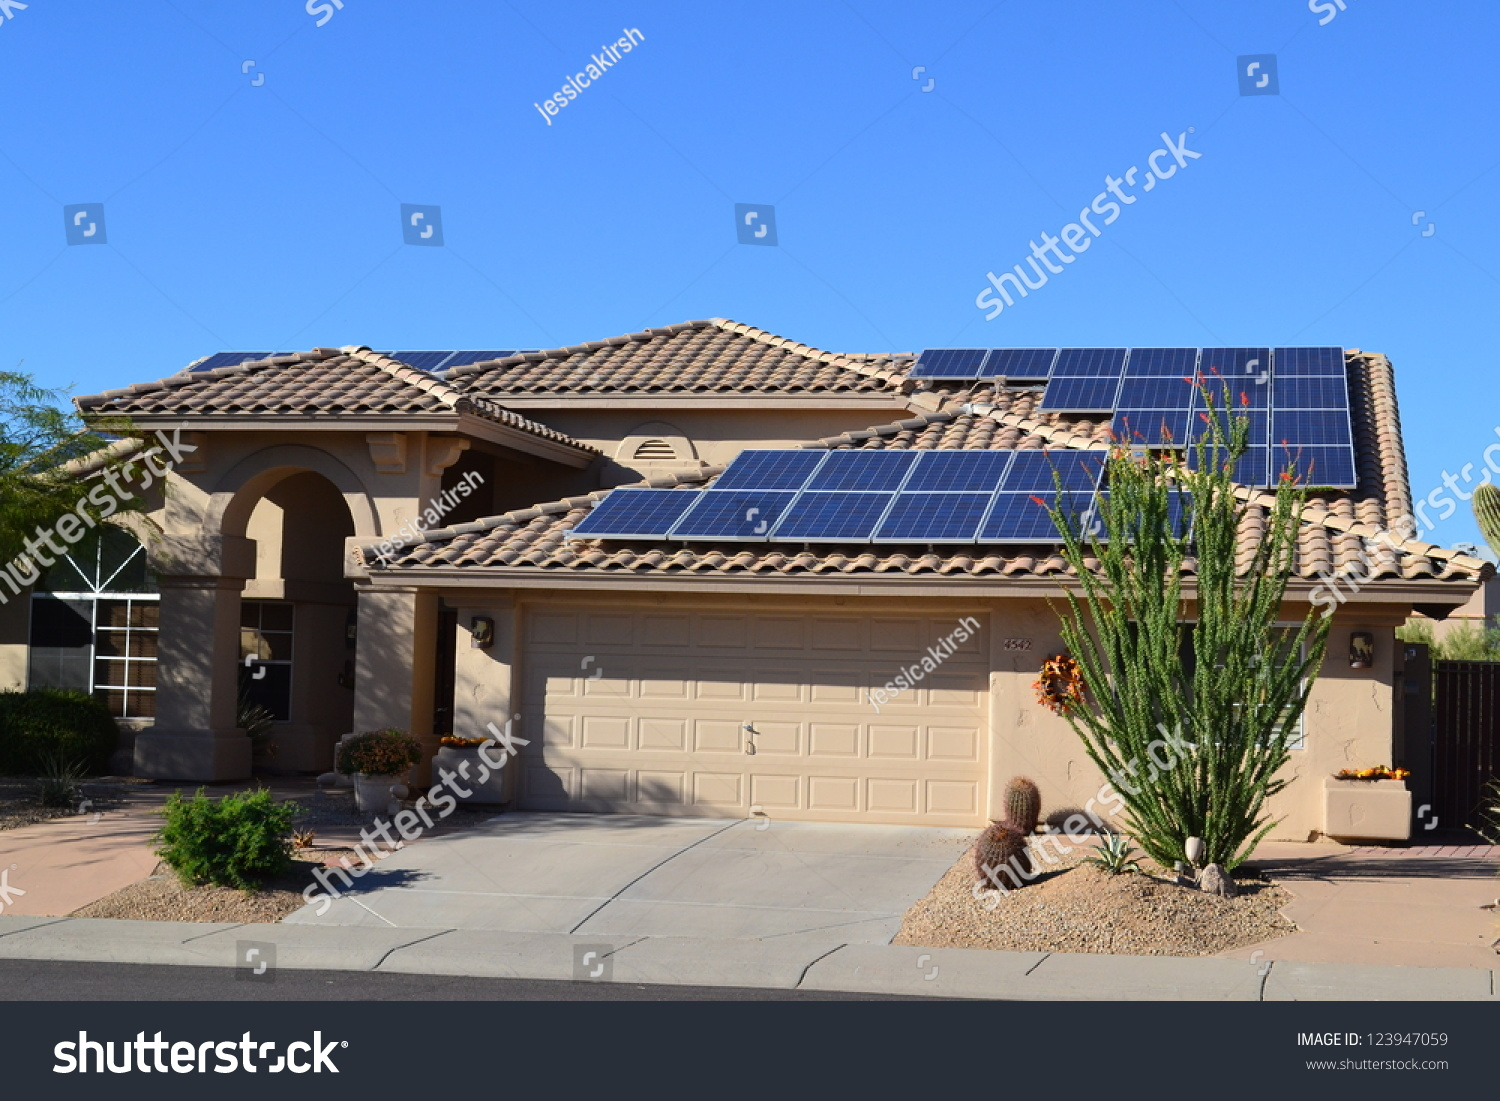 Western ranch style house with solar panels stock photo for Solar ranch